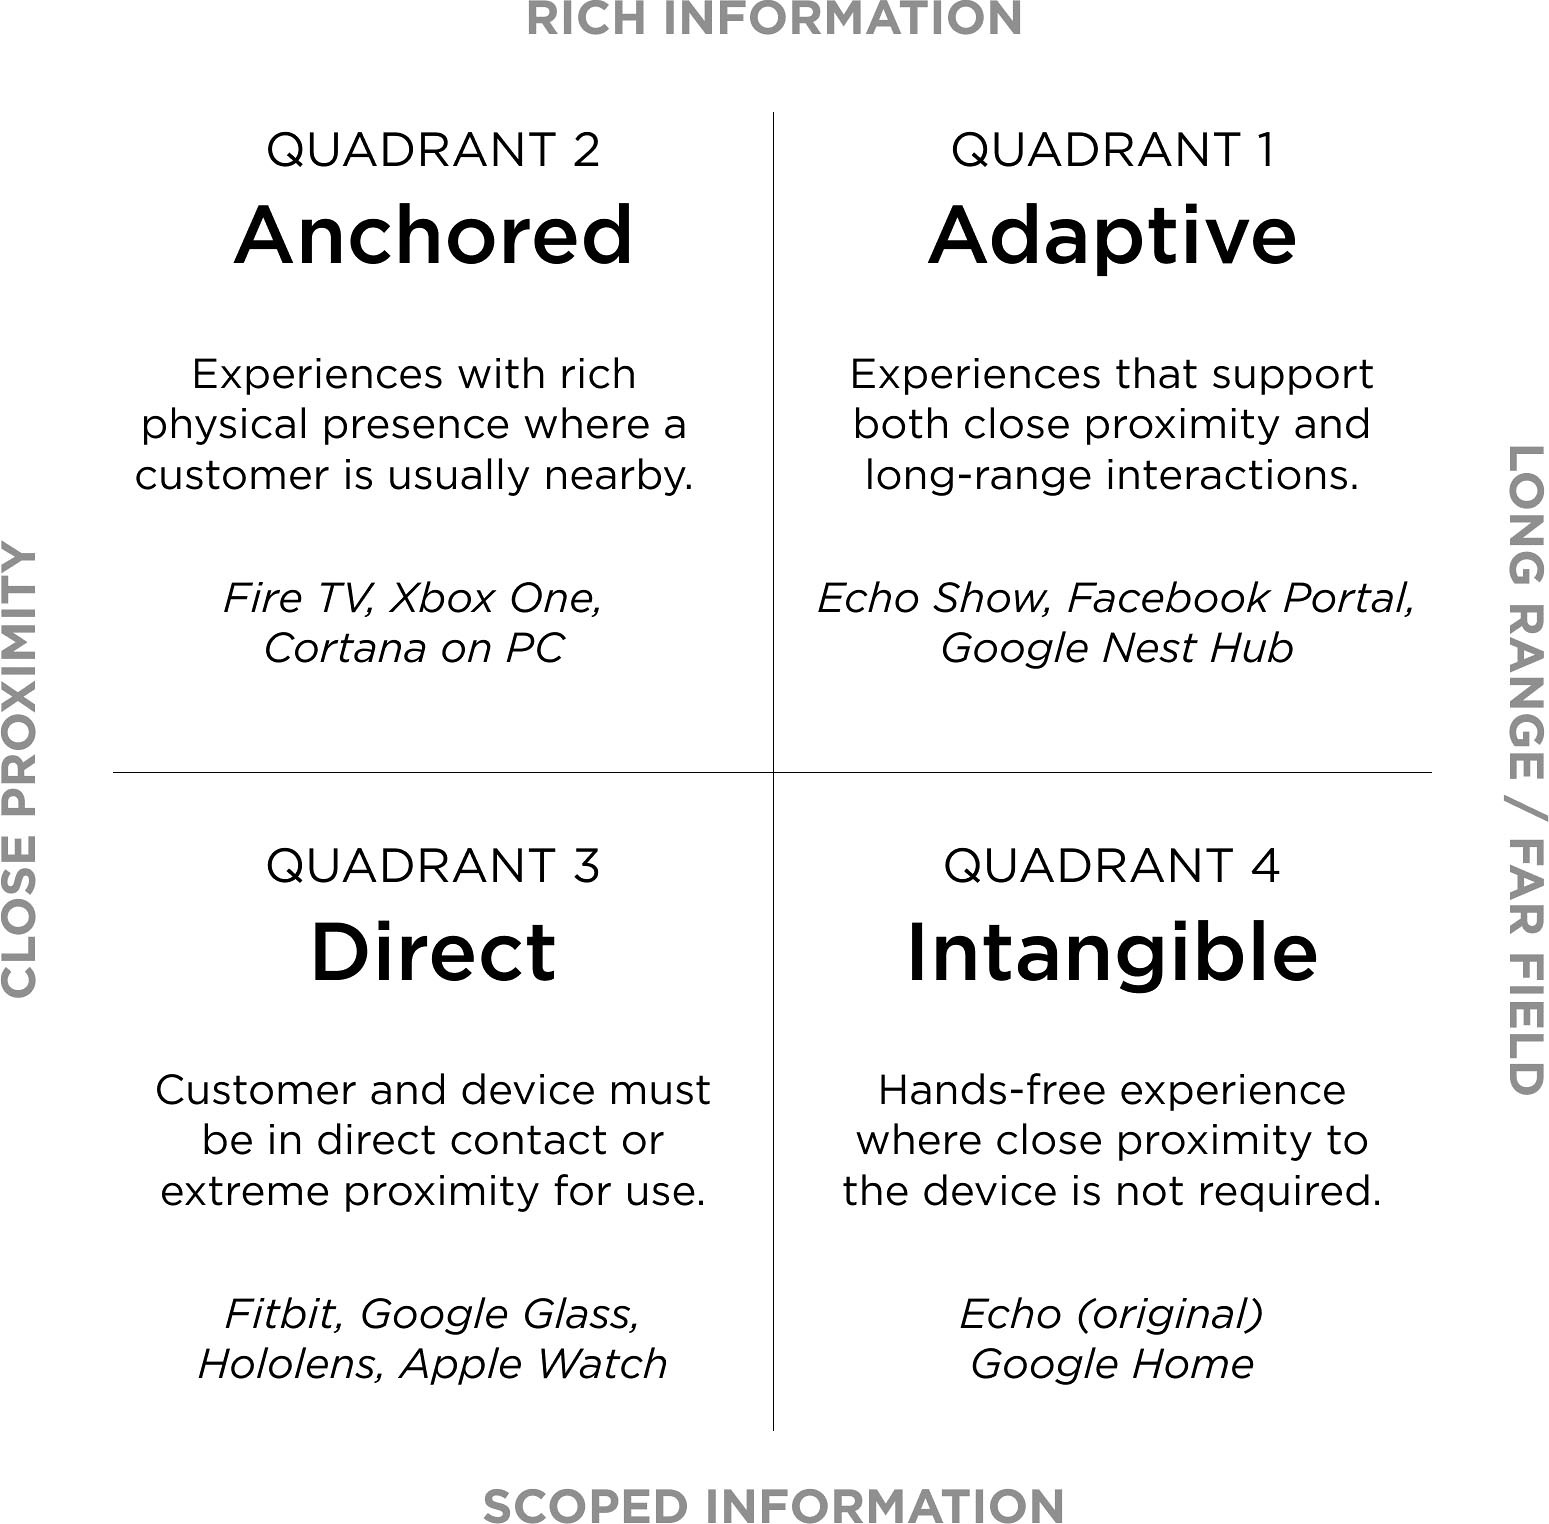 The spectrum for multimodal interactions ranges from Adaptive, to Anchored, to Direct, to Intangible. Quadrants are characterized by a user's proximity and physical engagement with the modality as well as the richness of information being communicated.